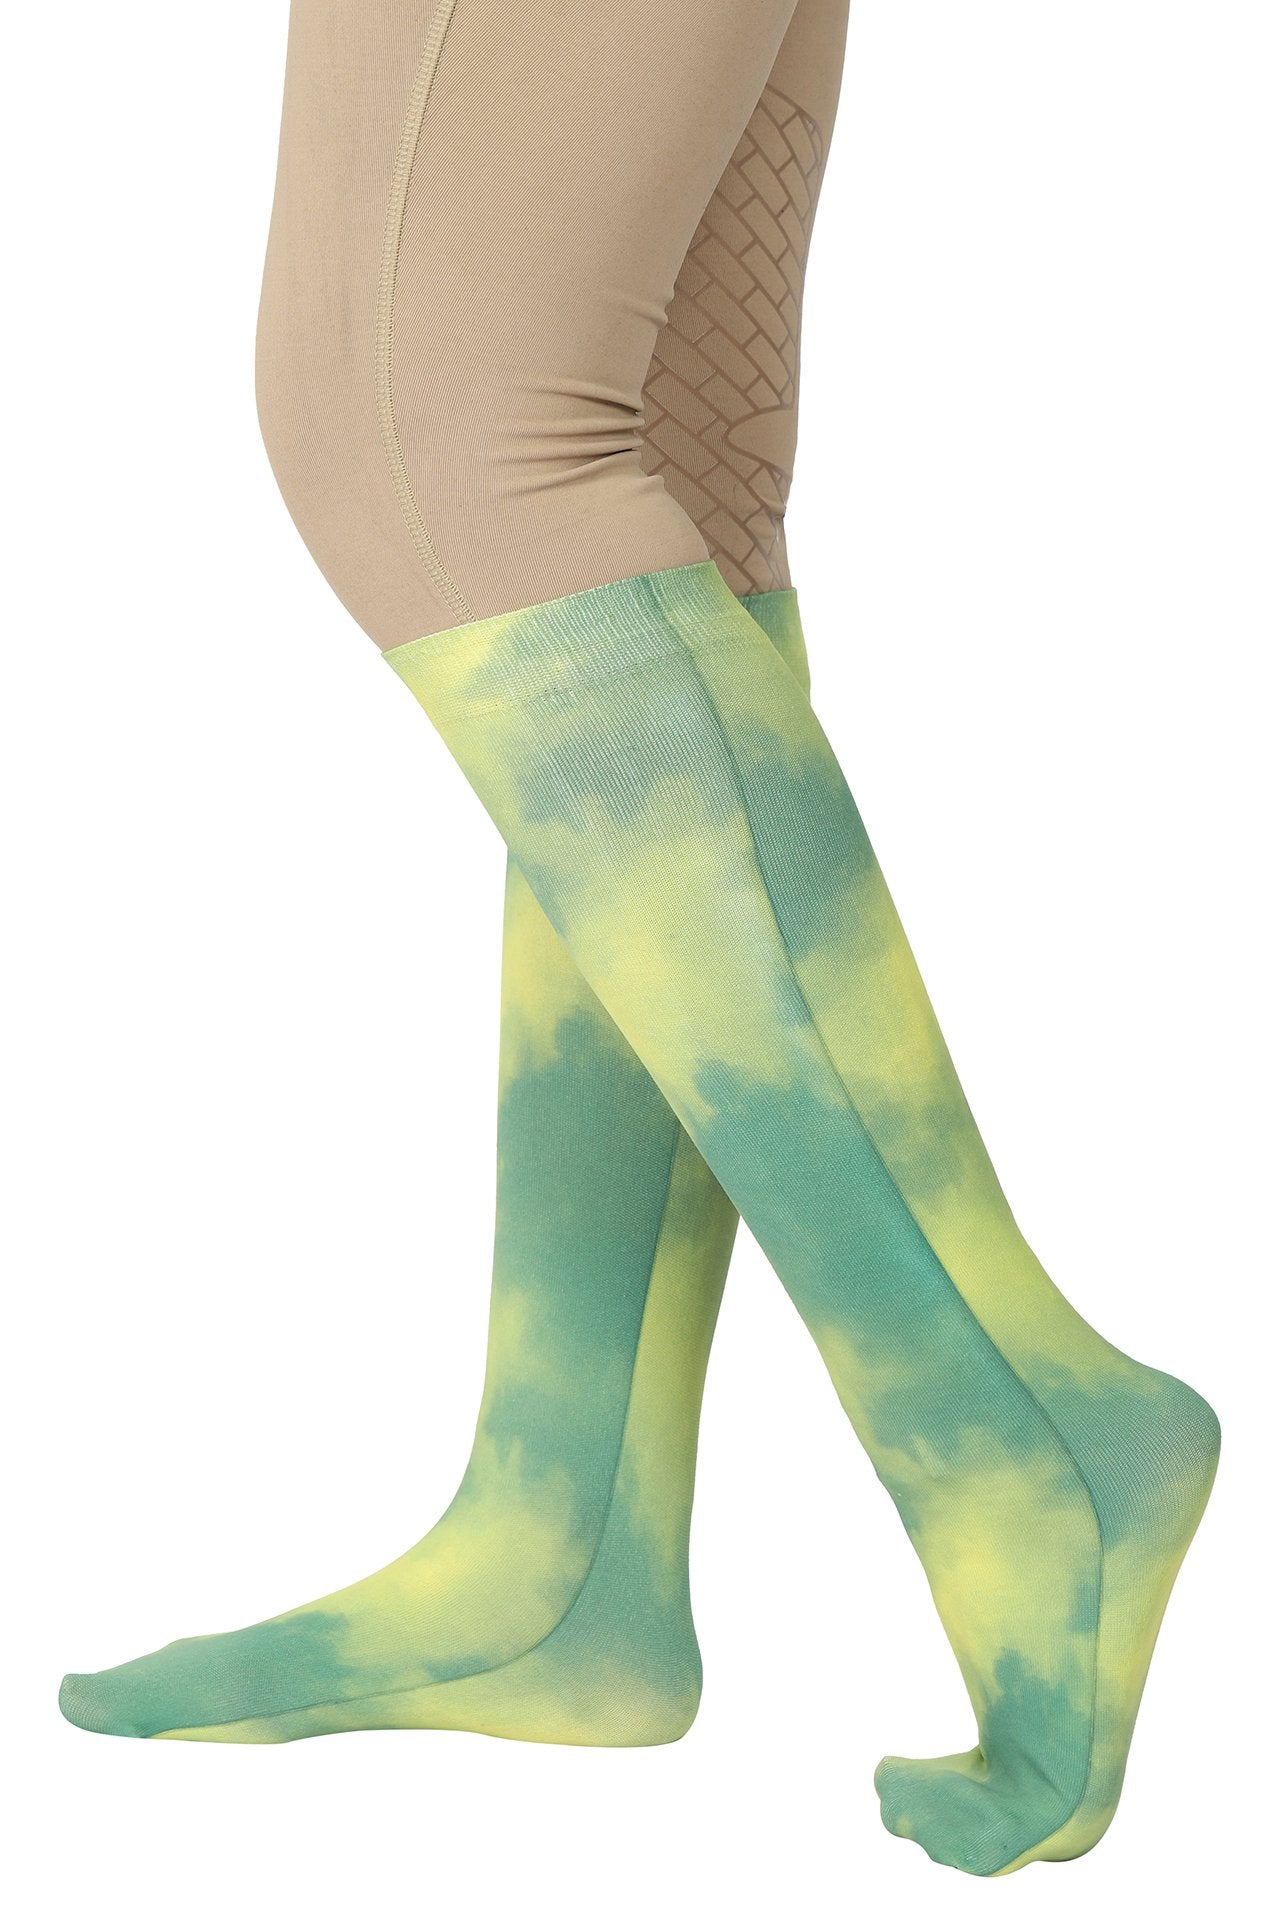 TUFFRIDER COTTON FEEL TIE DYE BOOT SOCKS	_1